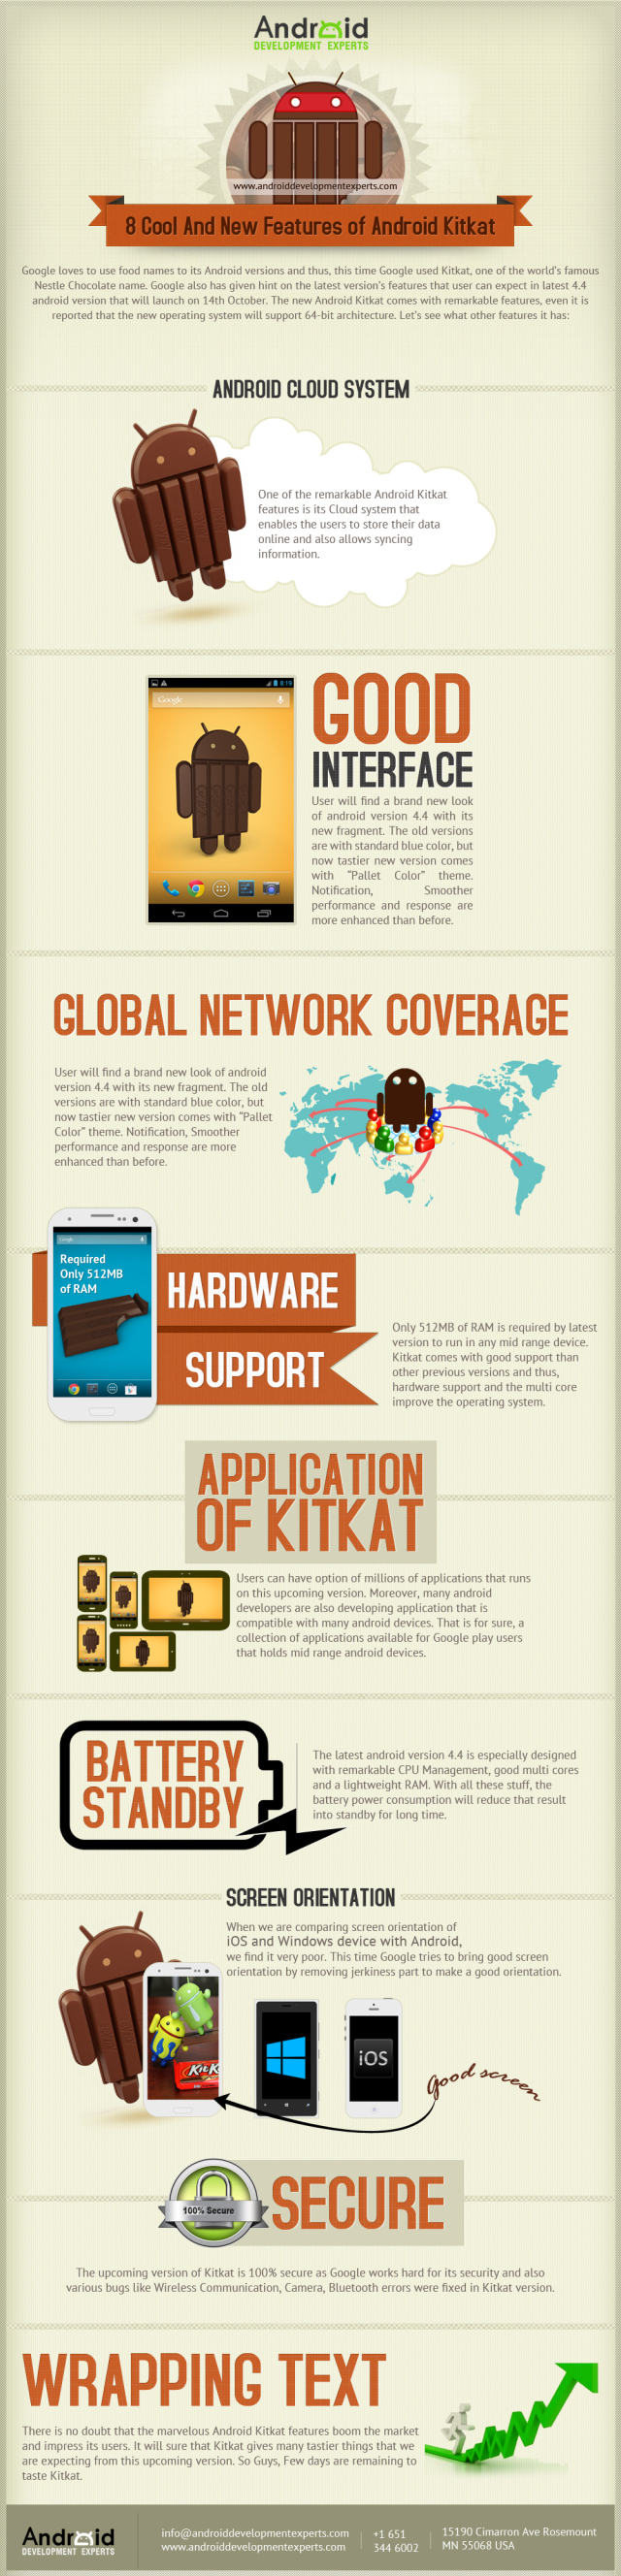 Features of Android Kitkat